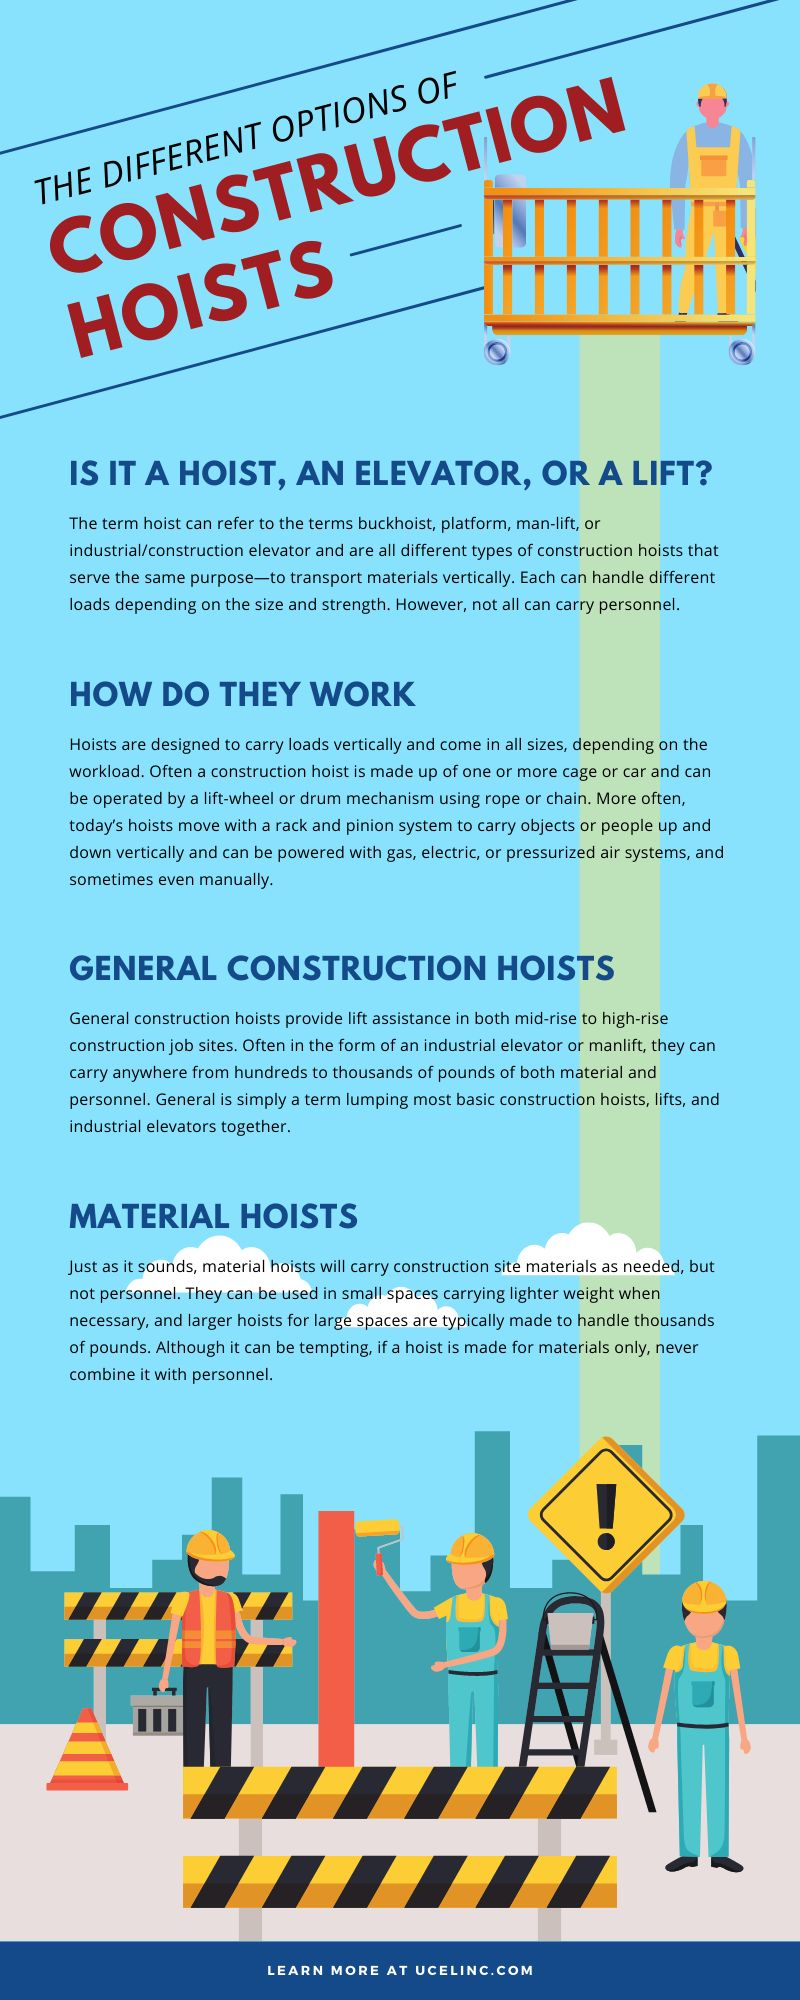 The Different Types of Construction Hoists